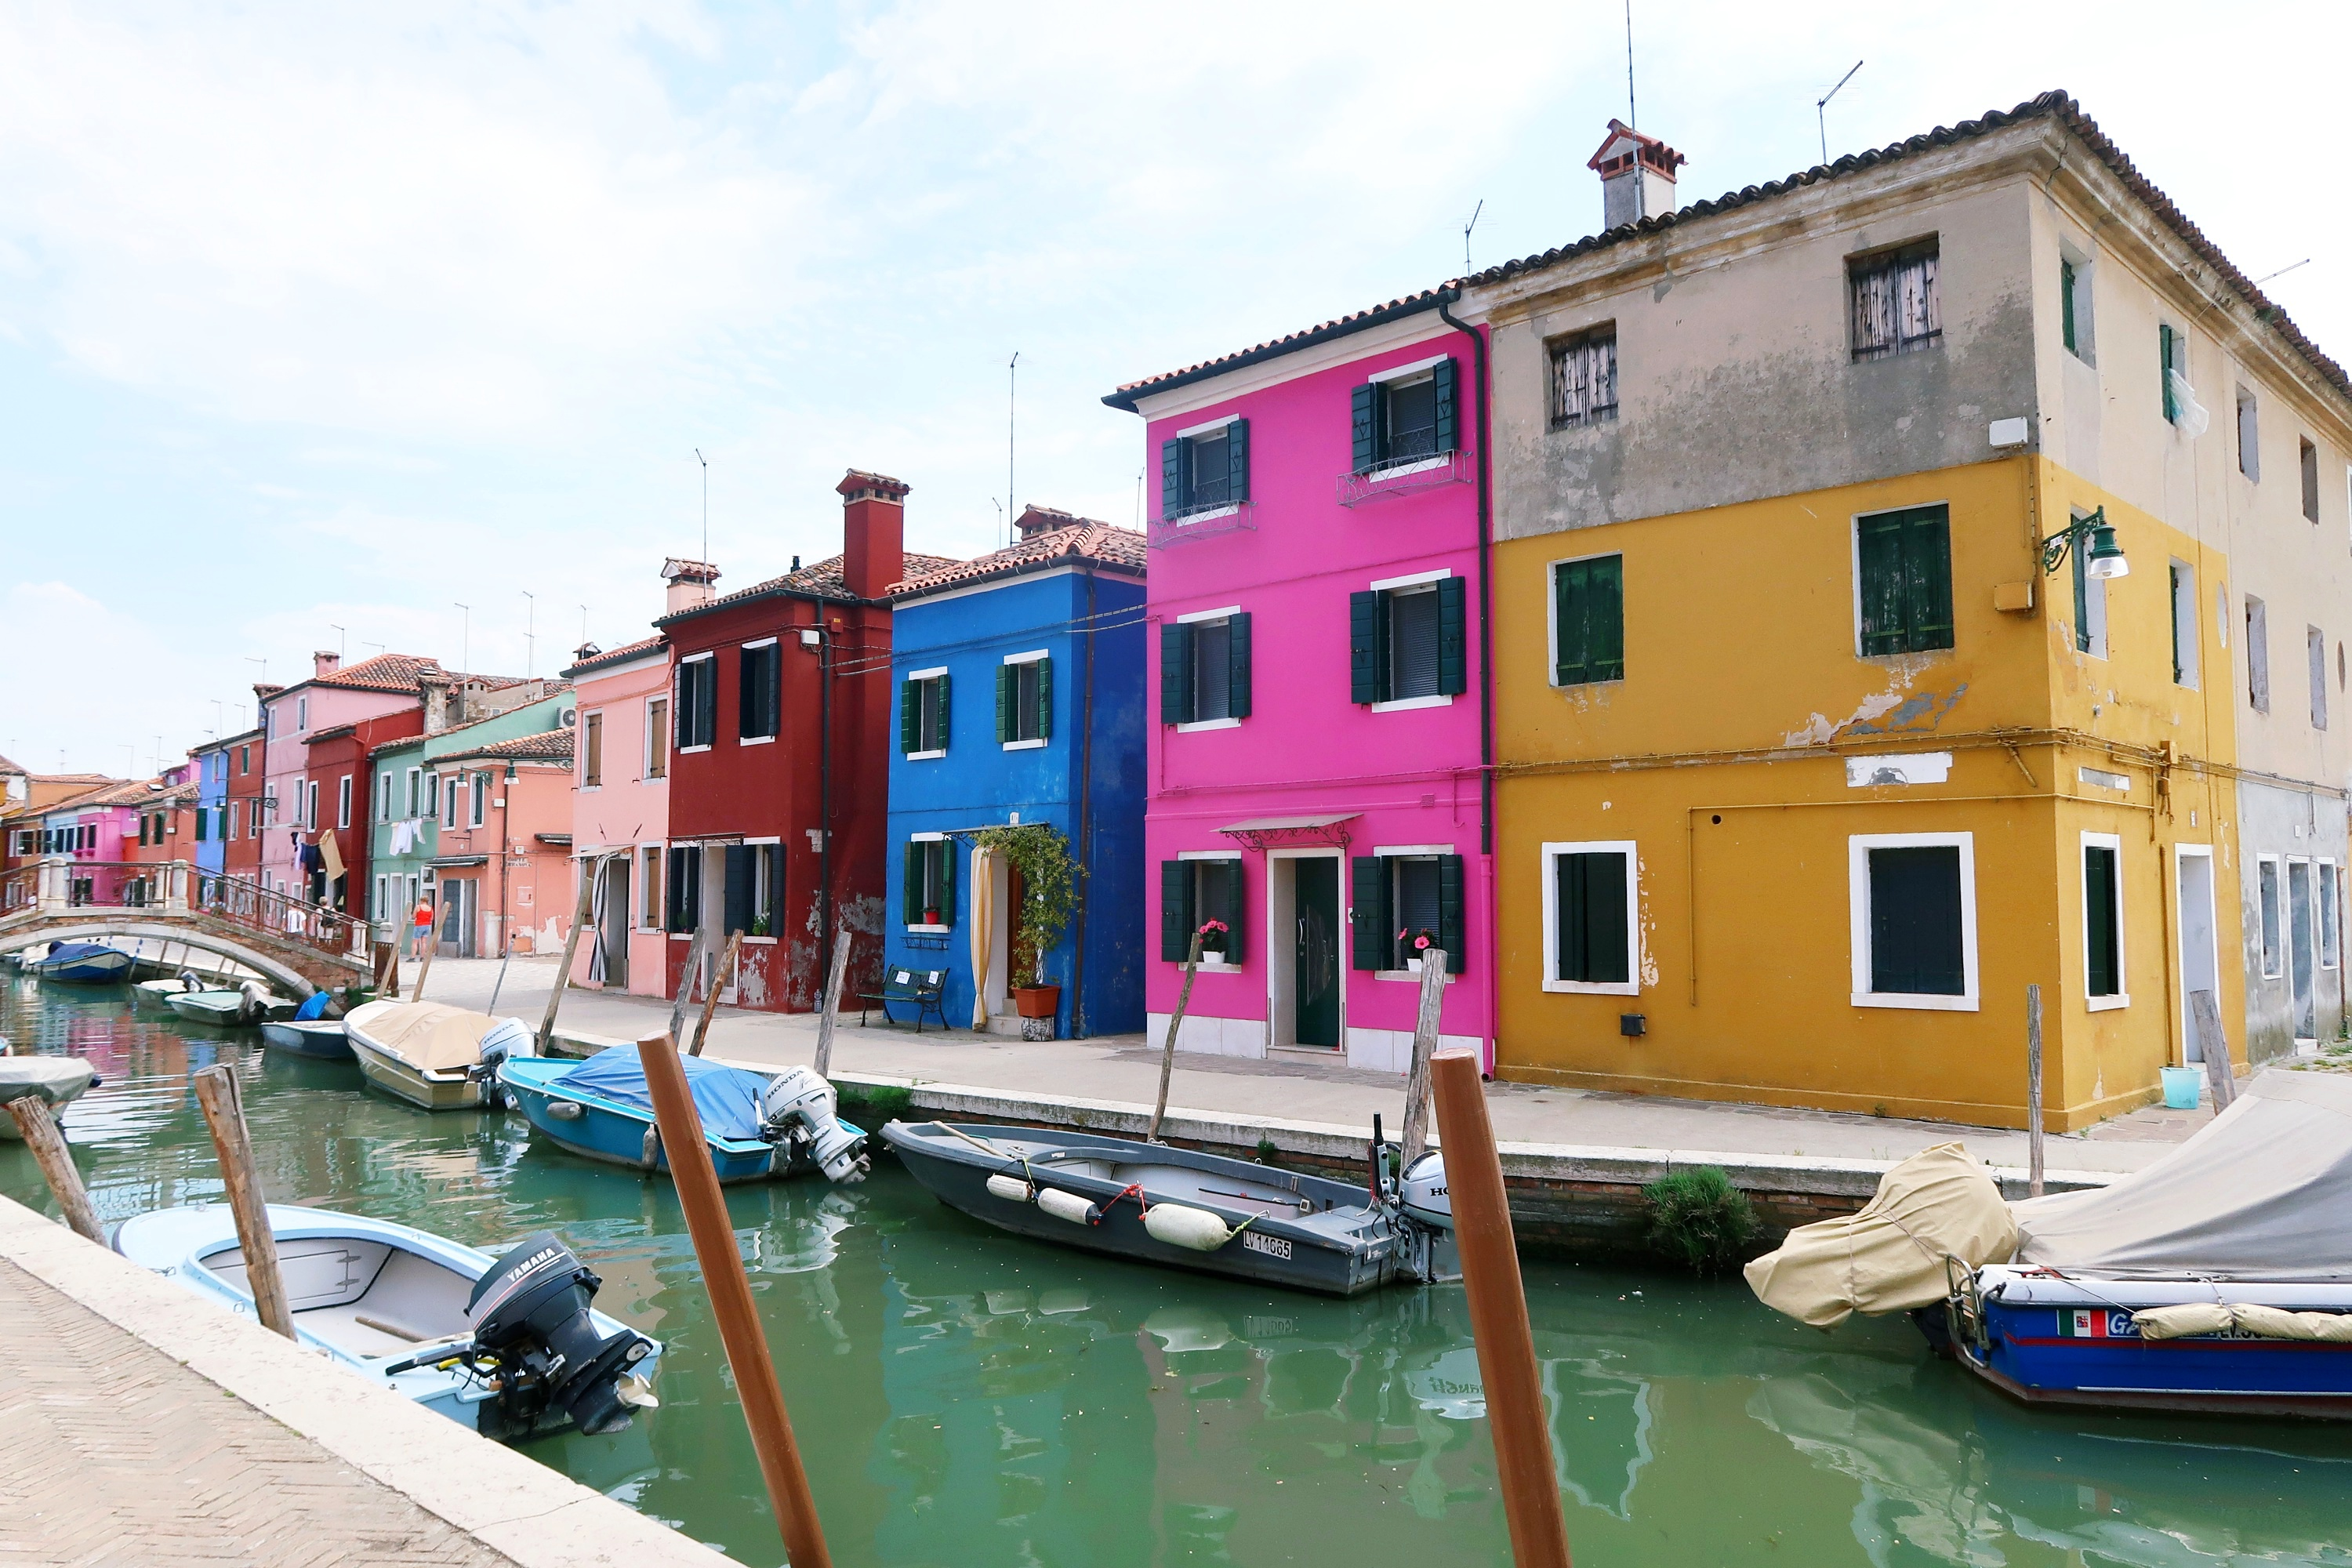 Burano Venice Italy - The LDN Diaries Travel Blog